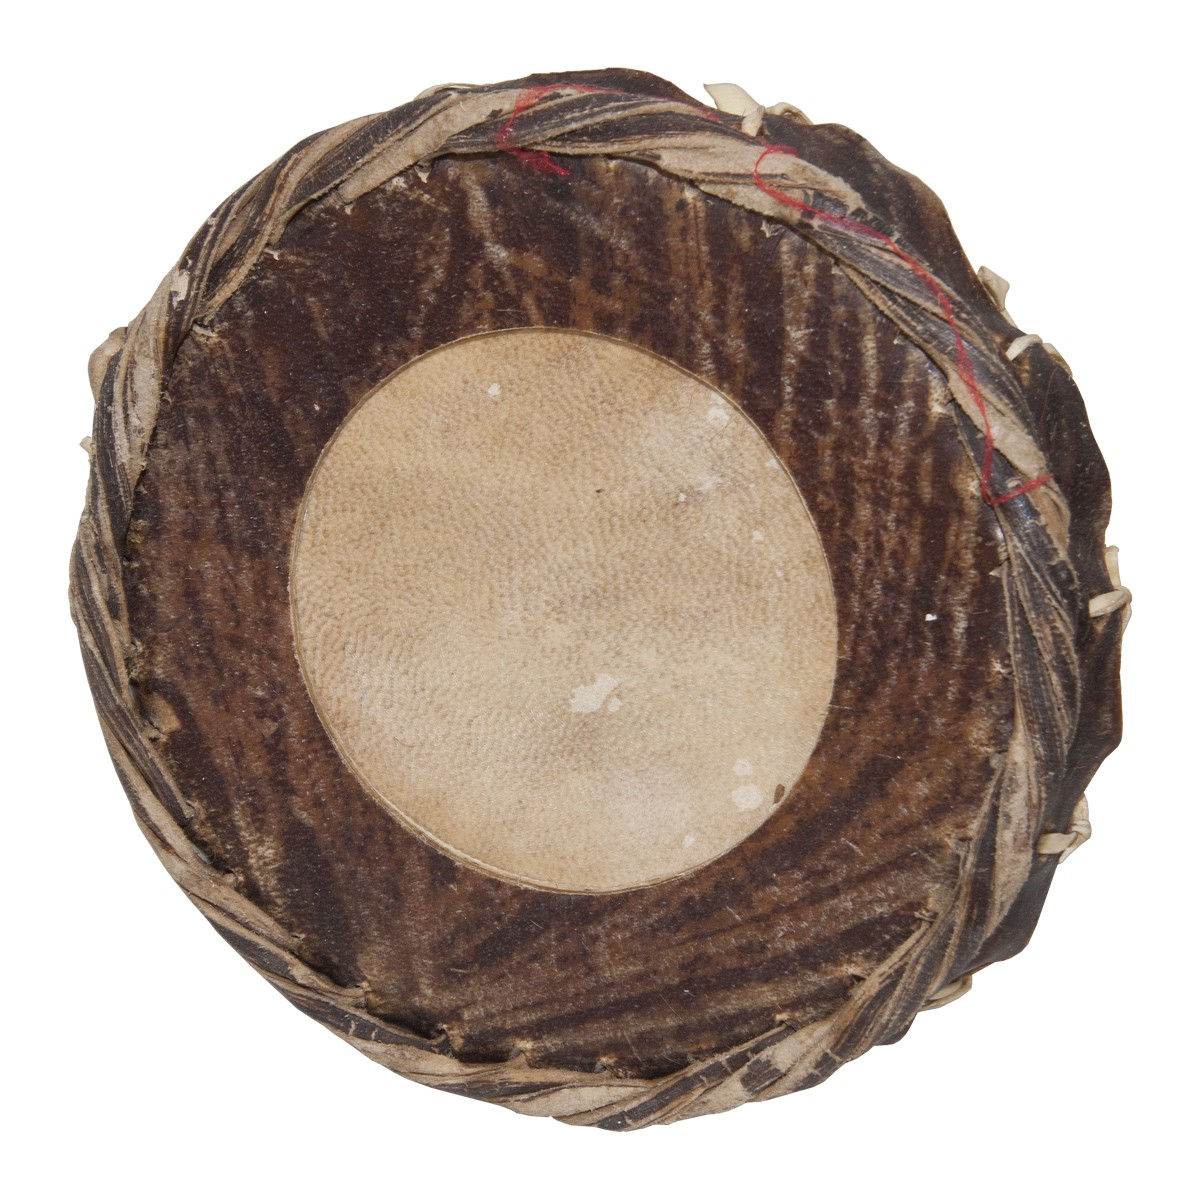 banjira Low (Thoppi) Mridangam Head 7.5'